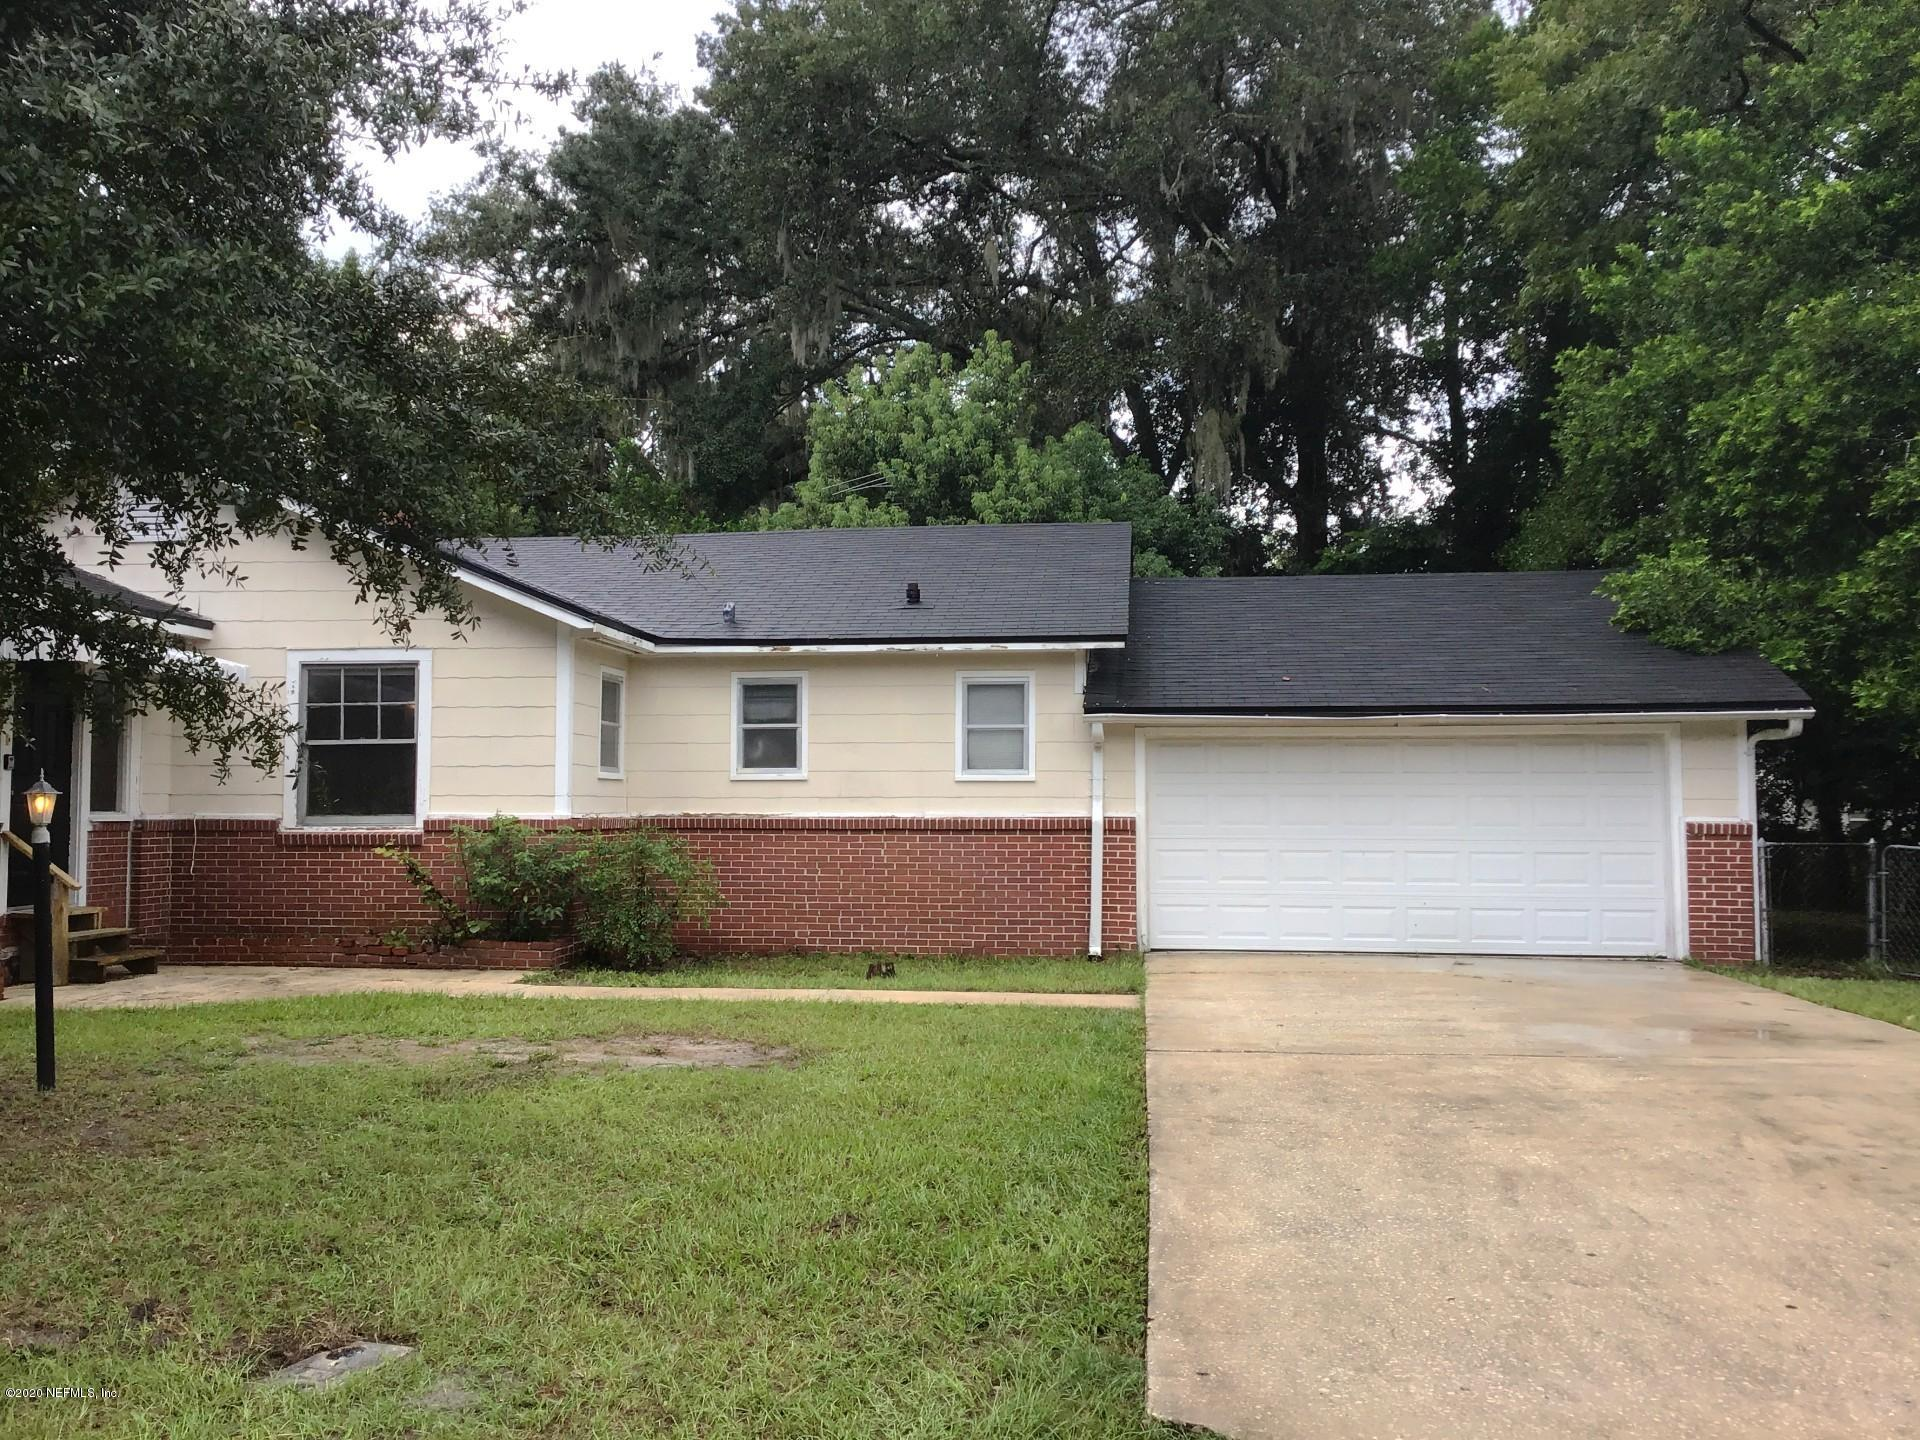 9030 9TH, JACKSONVILLE, FLORIDA 32208, 3 Bedrooms Bedrooms, ,1 BathroomBathrooms,Rental,For Rent,9TH,1072754